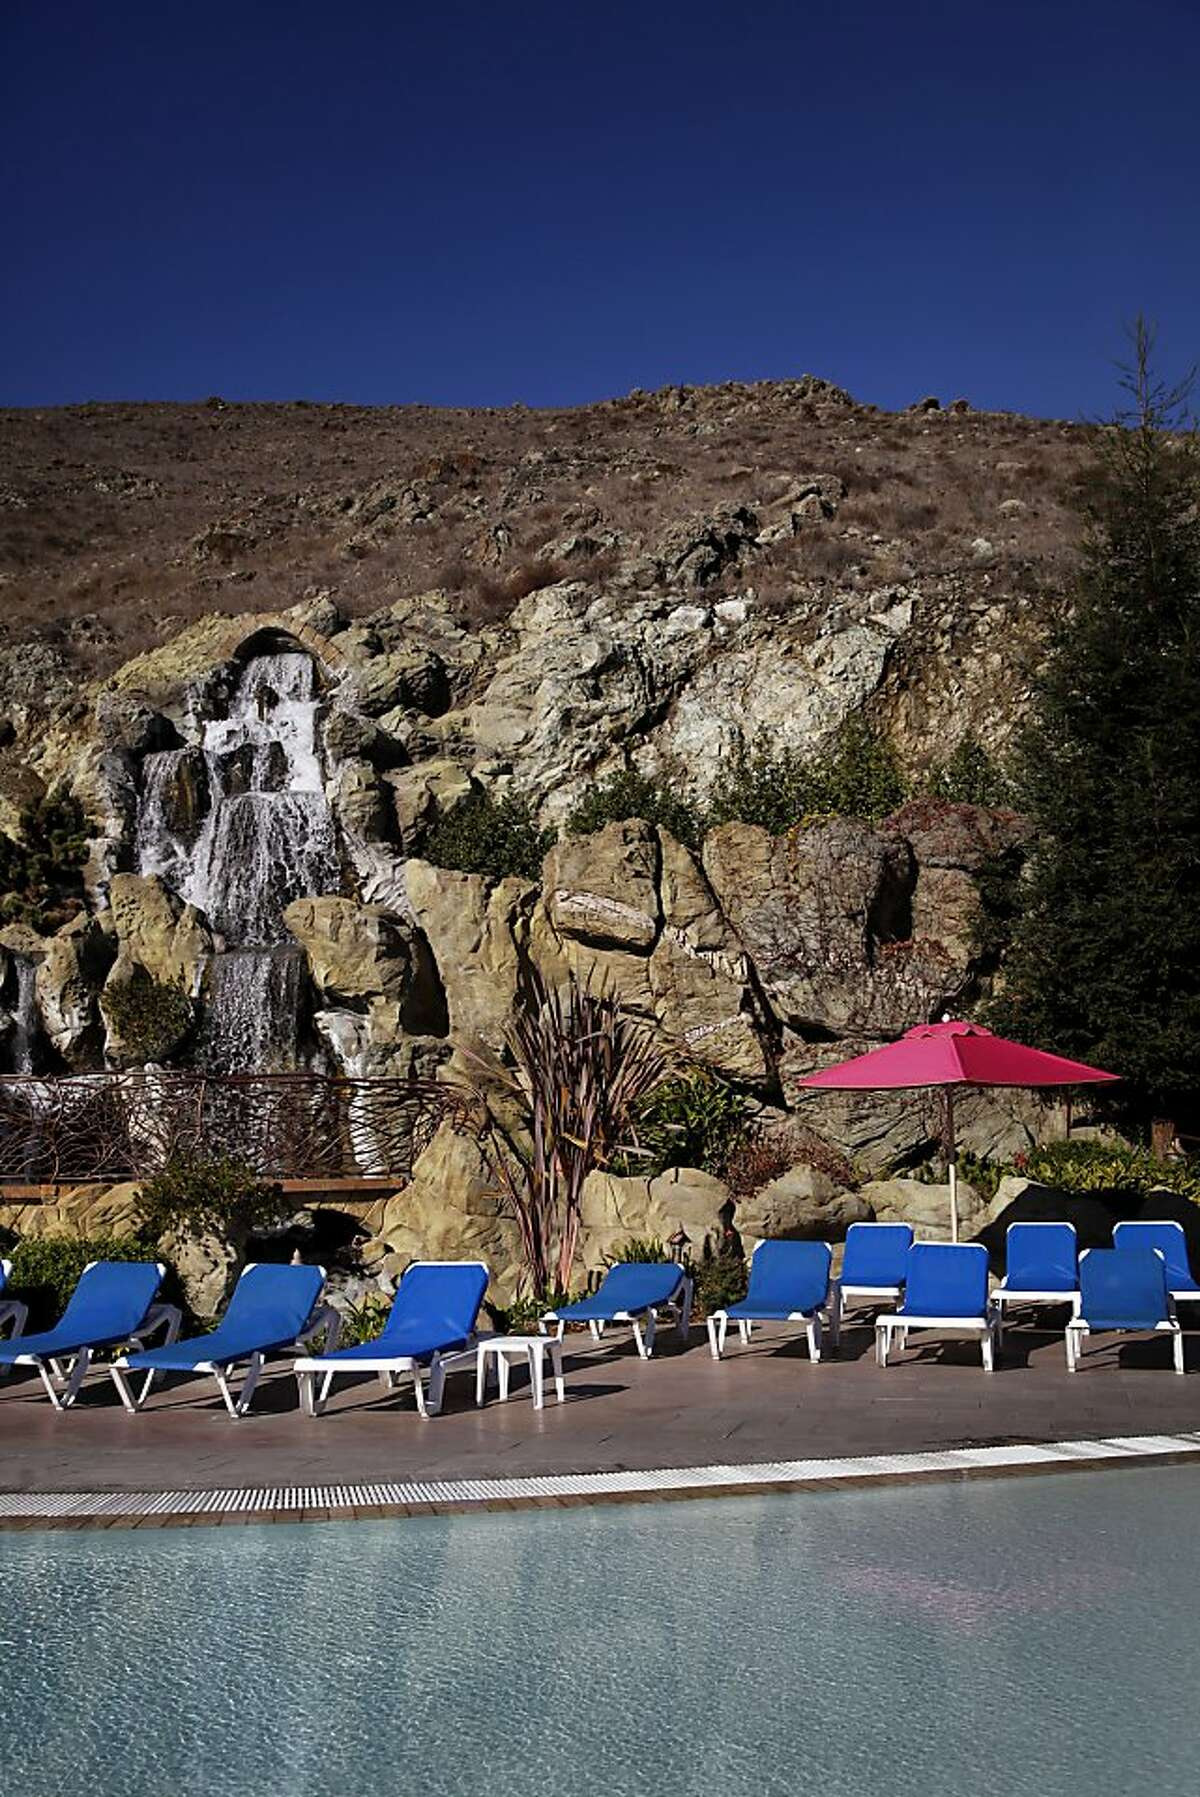 The heated pool and spa area at the Madonna Inn in San Luis Obispo, Calif. on Friday, December 20, 2013.